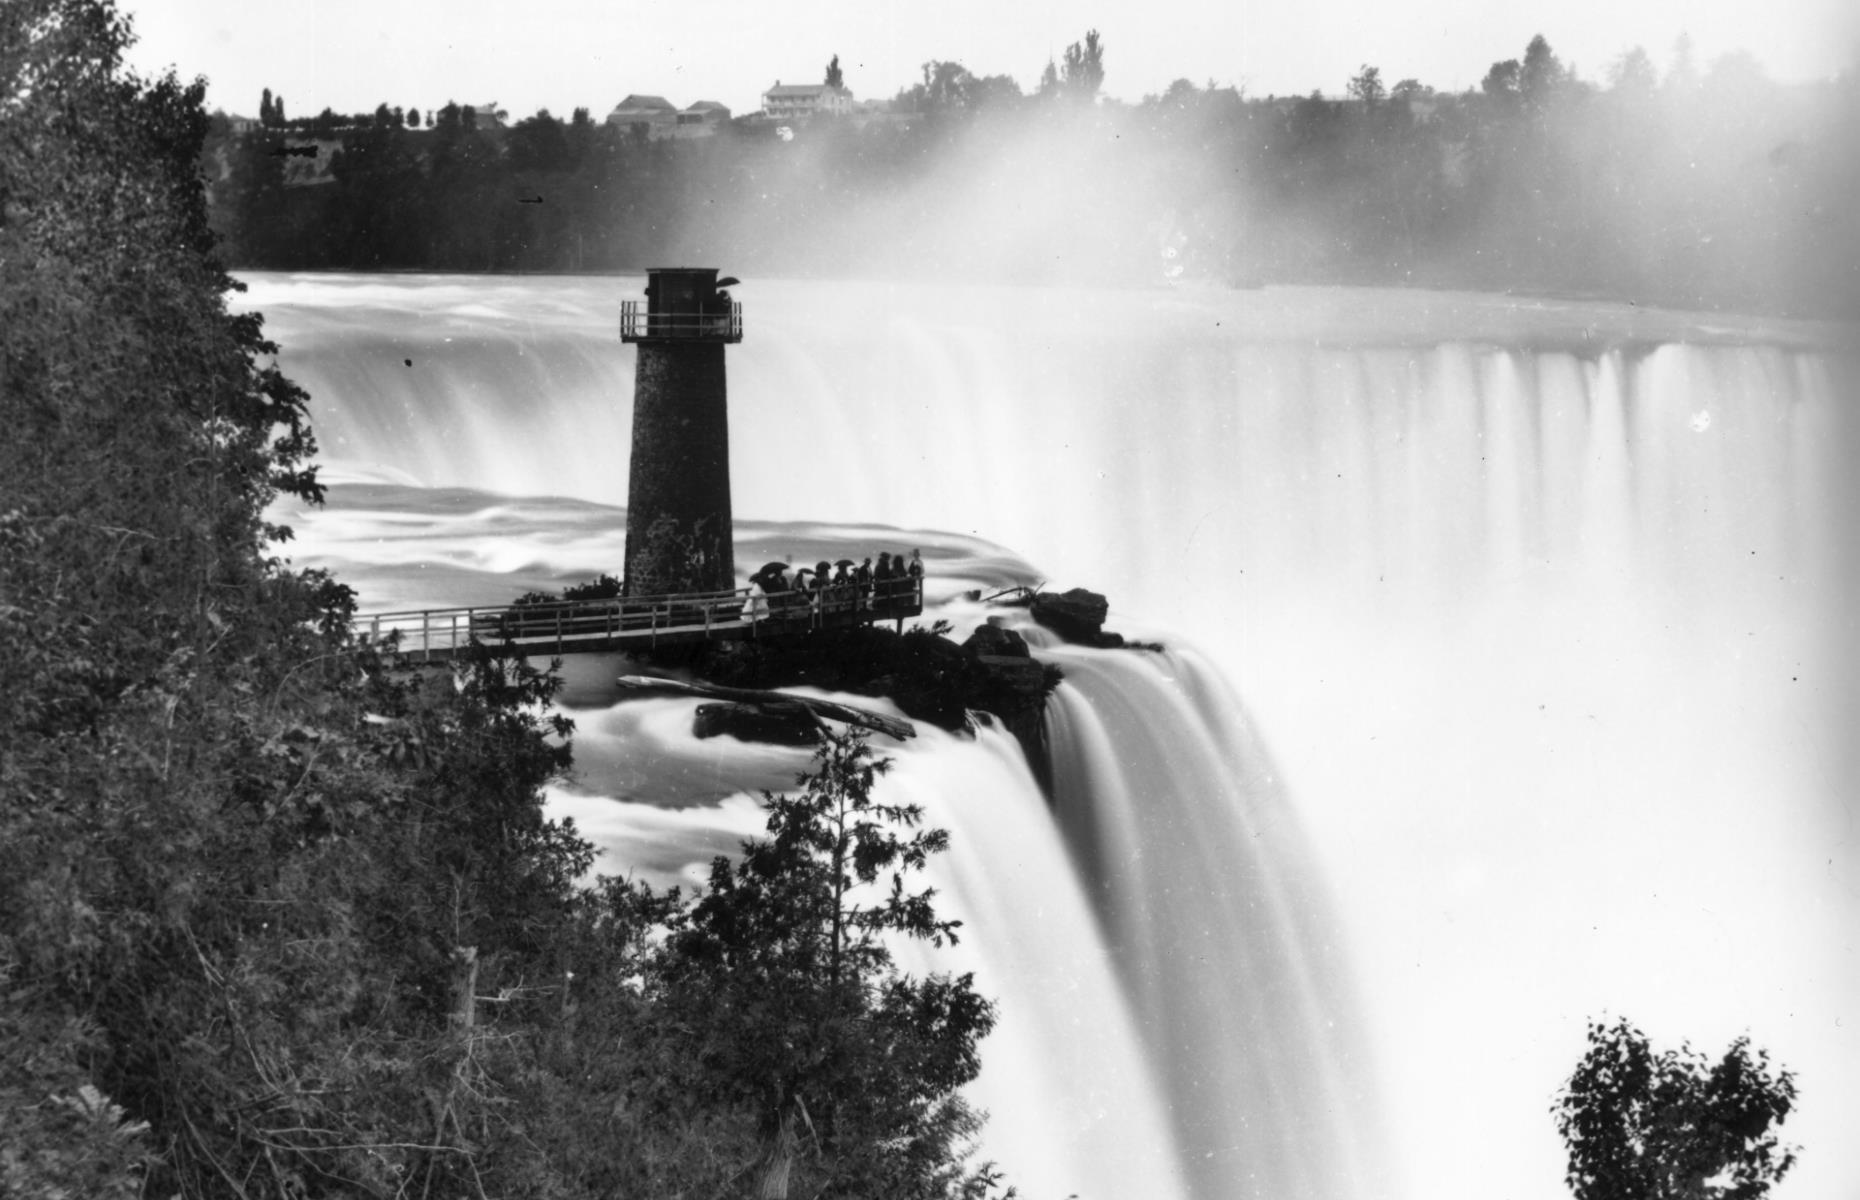 Slide 2 of 51: The gushing great waterfall hasalways fascinated its onlookers, and back in 1859it was no different. Look closely and you can see a small crowd of tourists standing beneath Terrapin Tower, built in 1833 at the edge ofHorseshoe Falls (the Canadian section). A wooden bridge was constructed earlier in 1827 for people to drink in the incredible views across the water. The bridge was an instant hit and attracted visitors from both America and Europe, before tightrope artist Blondin's famous performances over the falls in 1859helped catapult the attraction to further international fame.